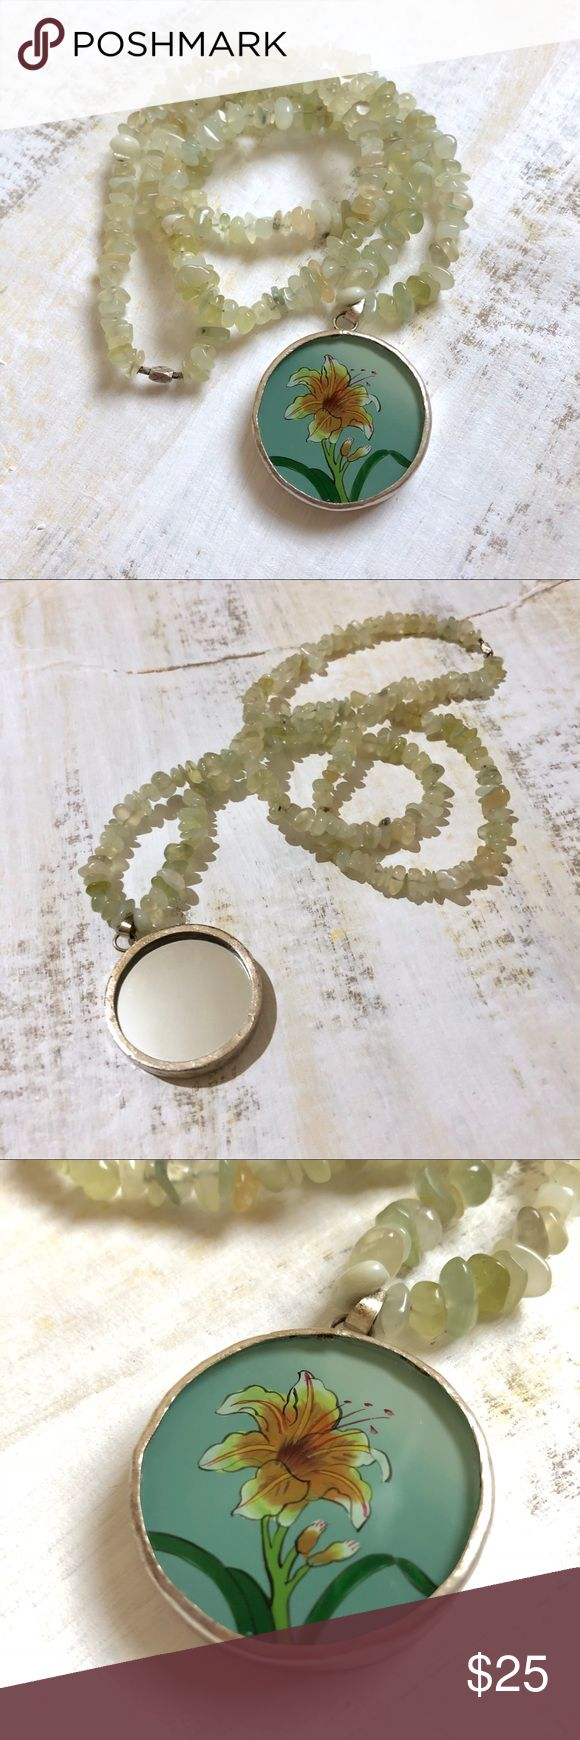 """{HANDMADE} Floral Mirror Pendant Necklace Handmade. One of a kind.   Sea green new jade polished chips. Round pendant with hand painted lily on one side and a mirror on the reverse side.   No clasp. Slides over head.   16"""" drop length  32"""" total circumference  Pendant 1.5"""" Jewelry Necklaces"""